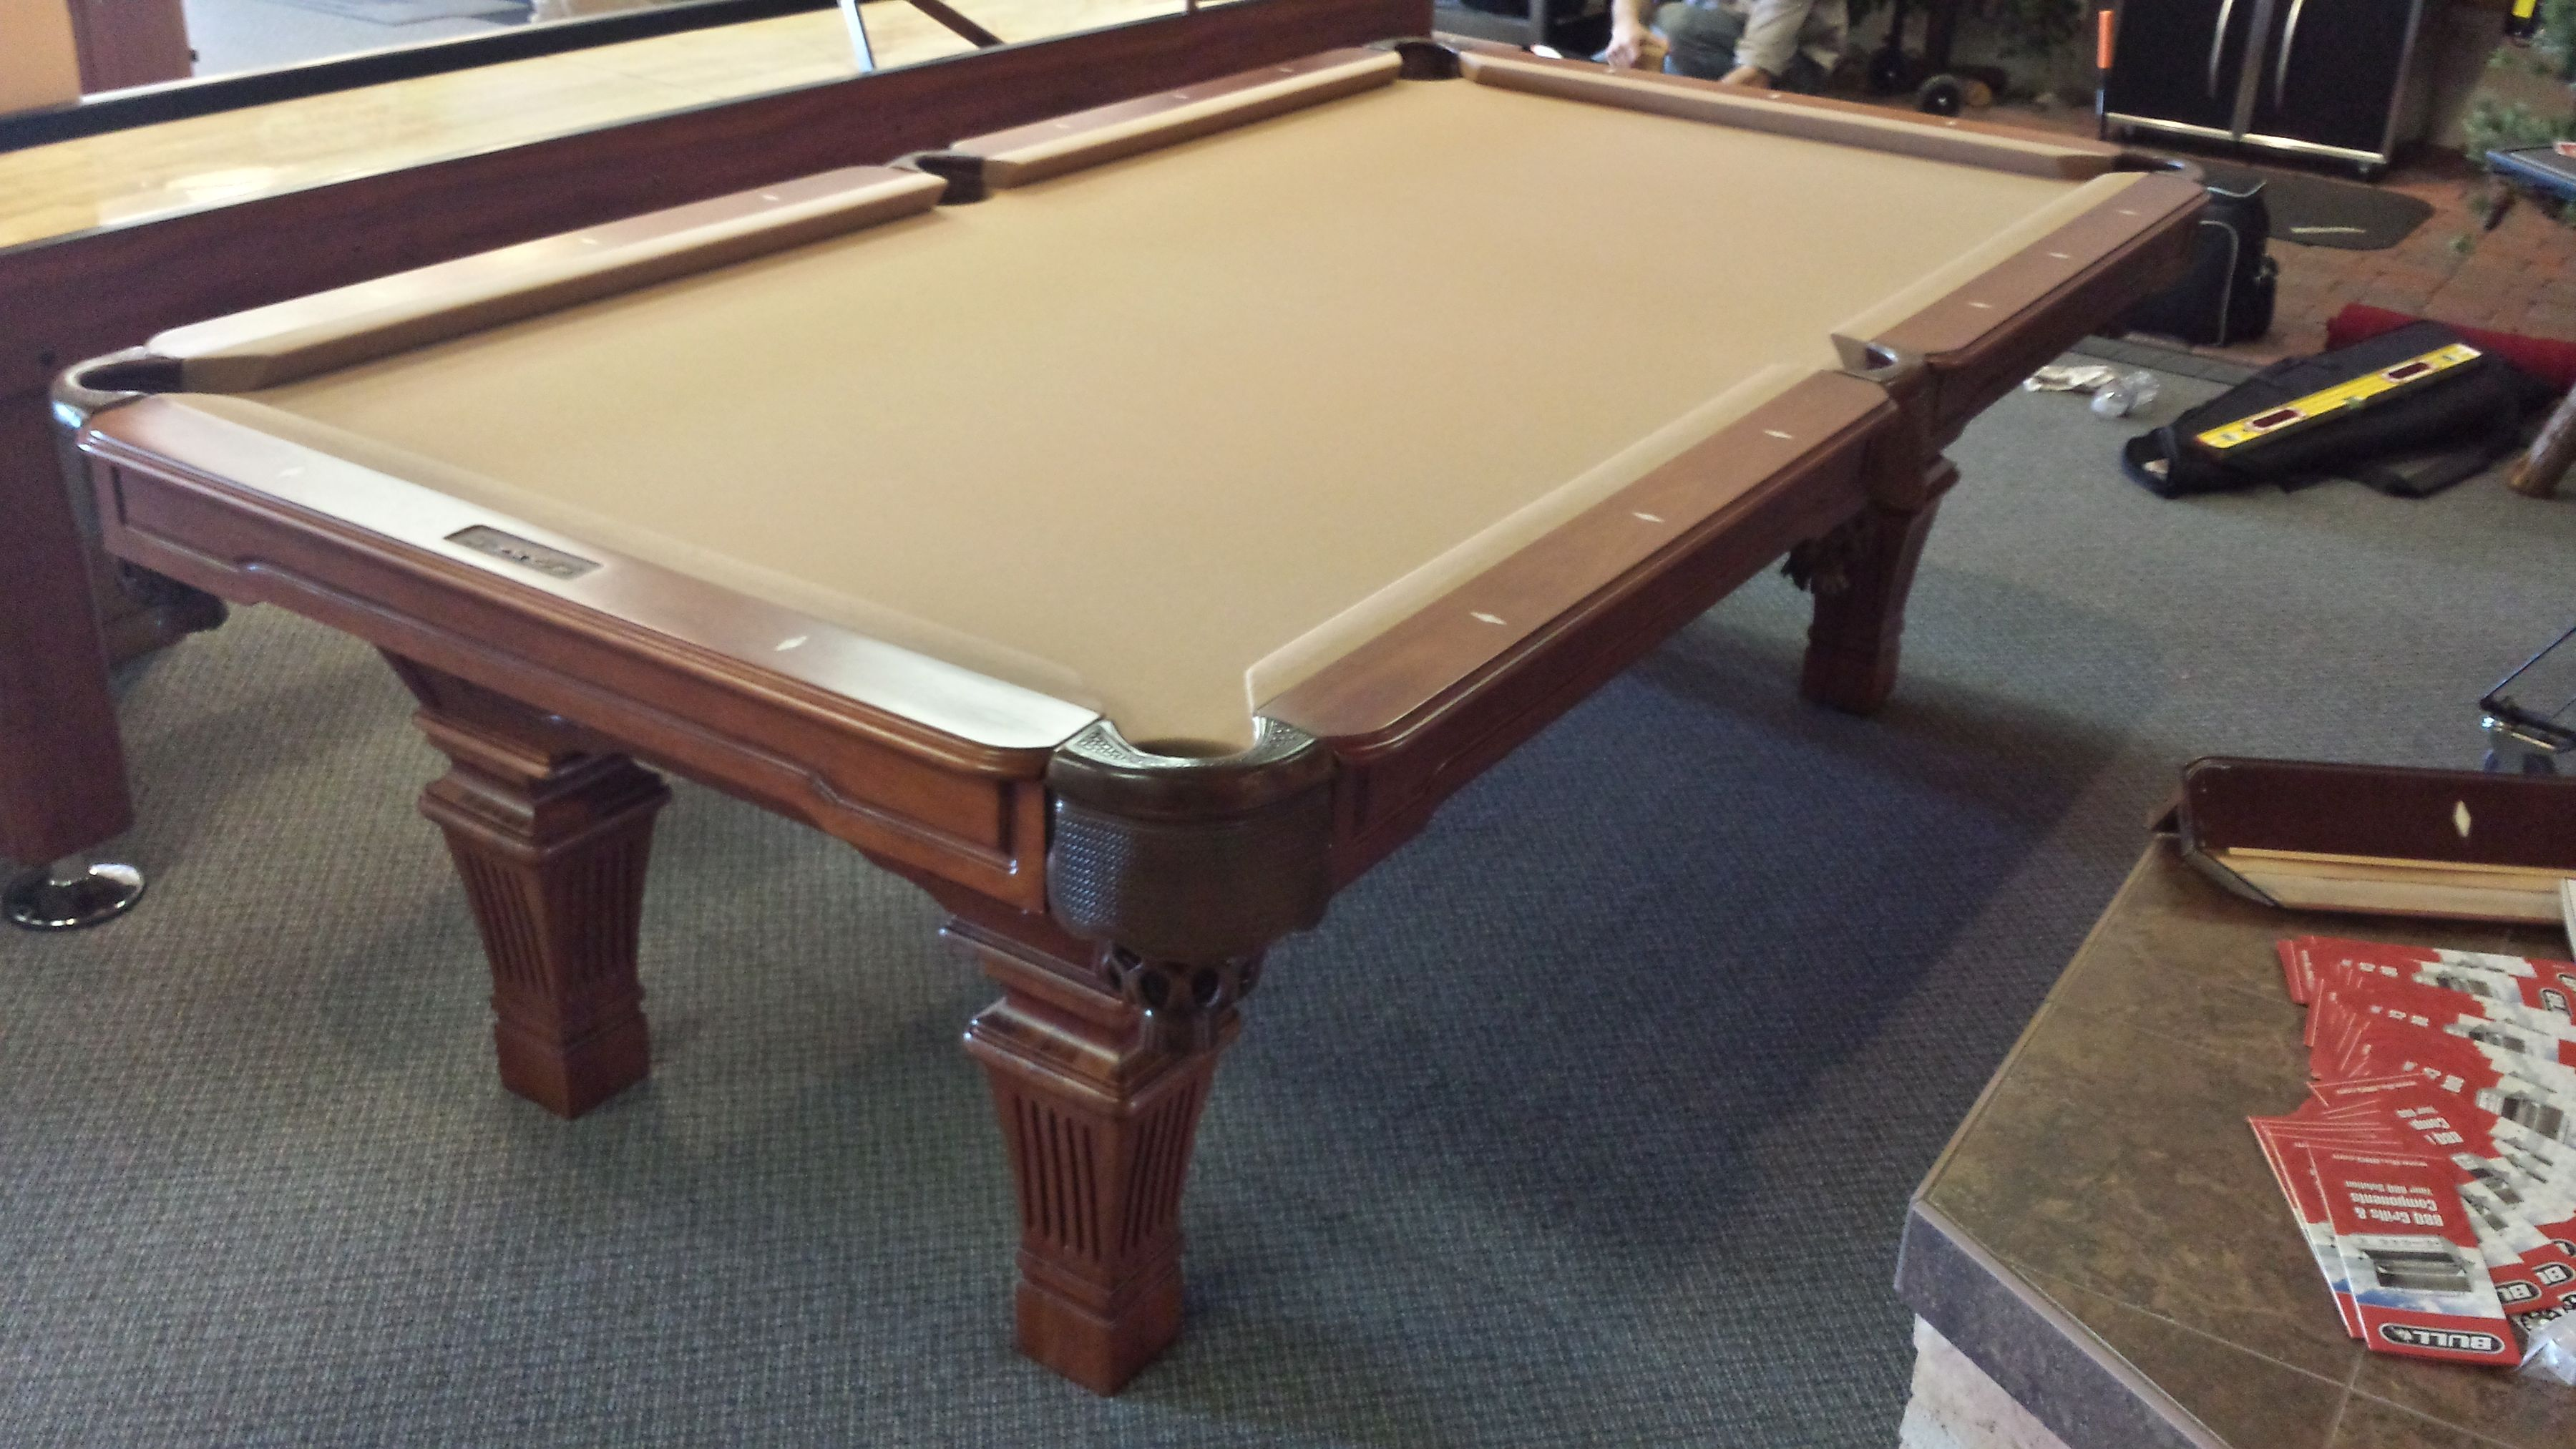 Installed New Presidential Billiards Table For My Friends At Spas Of - Buy my pool table